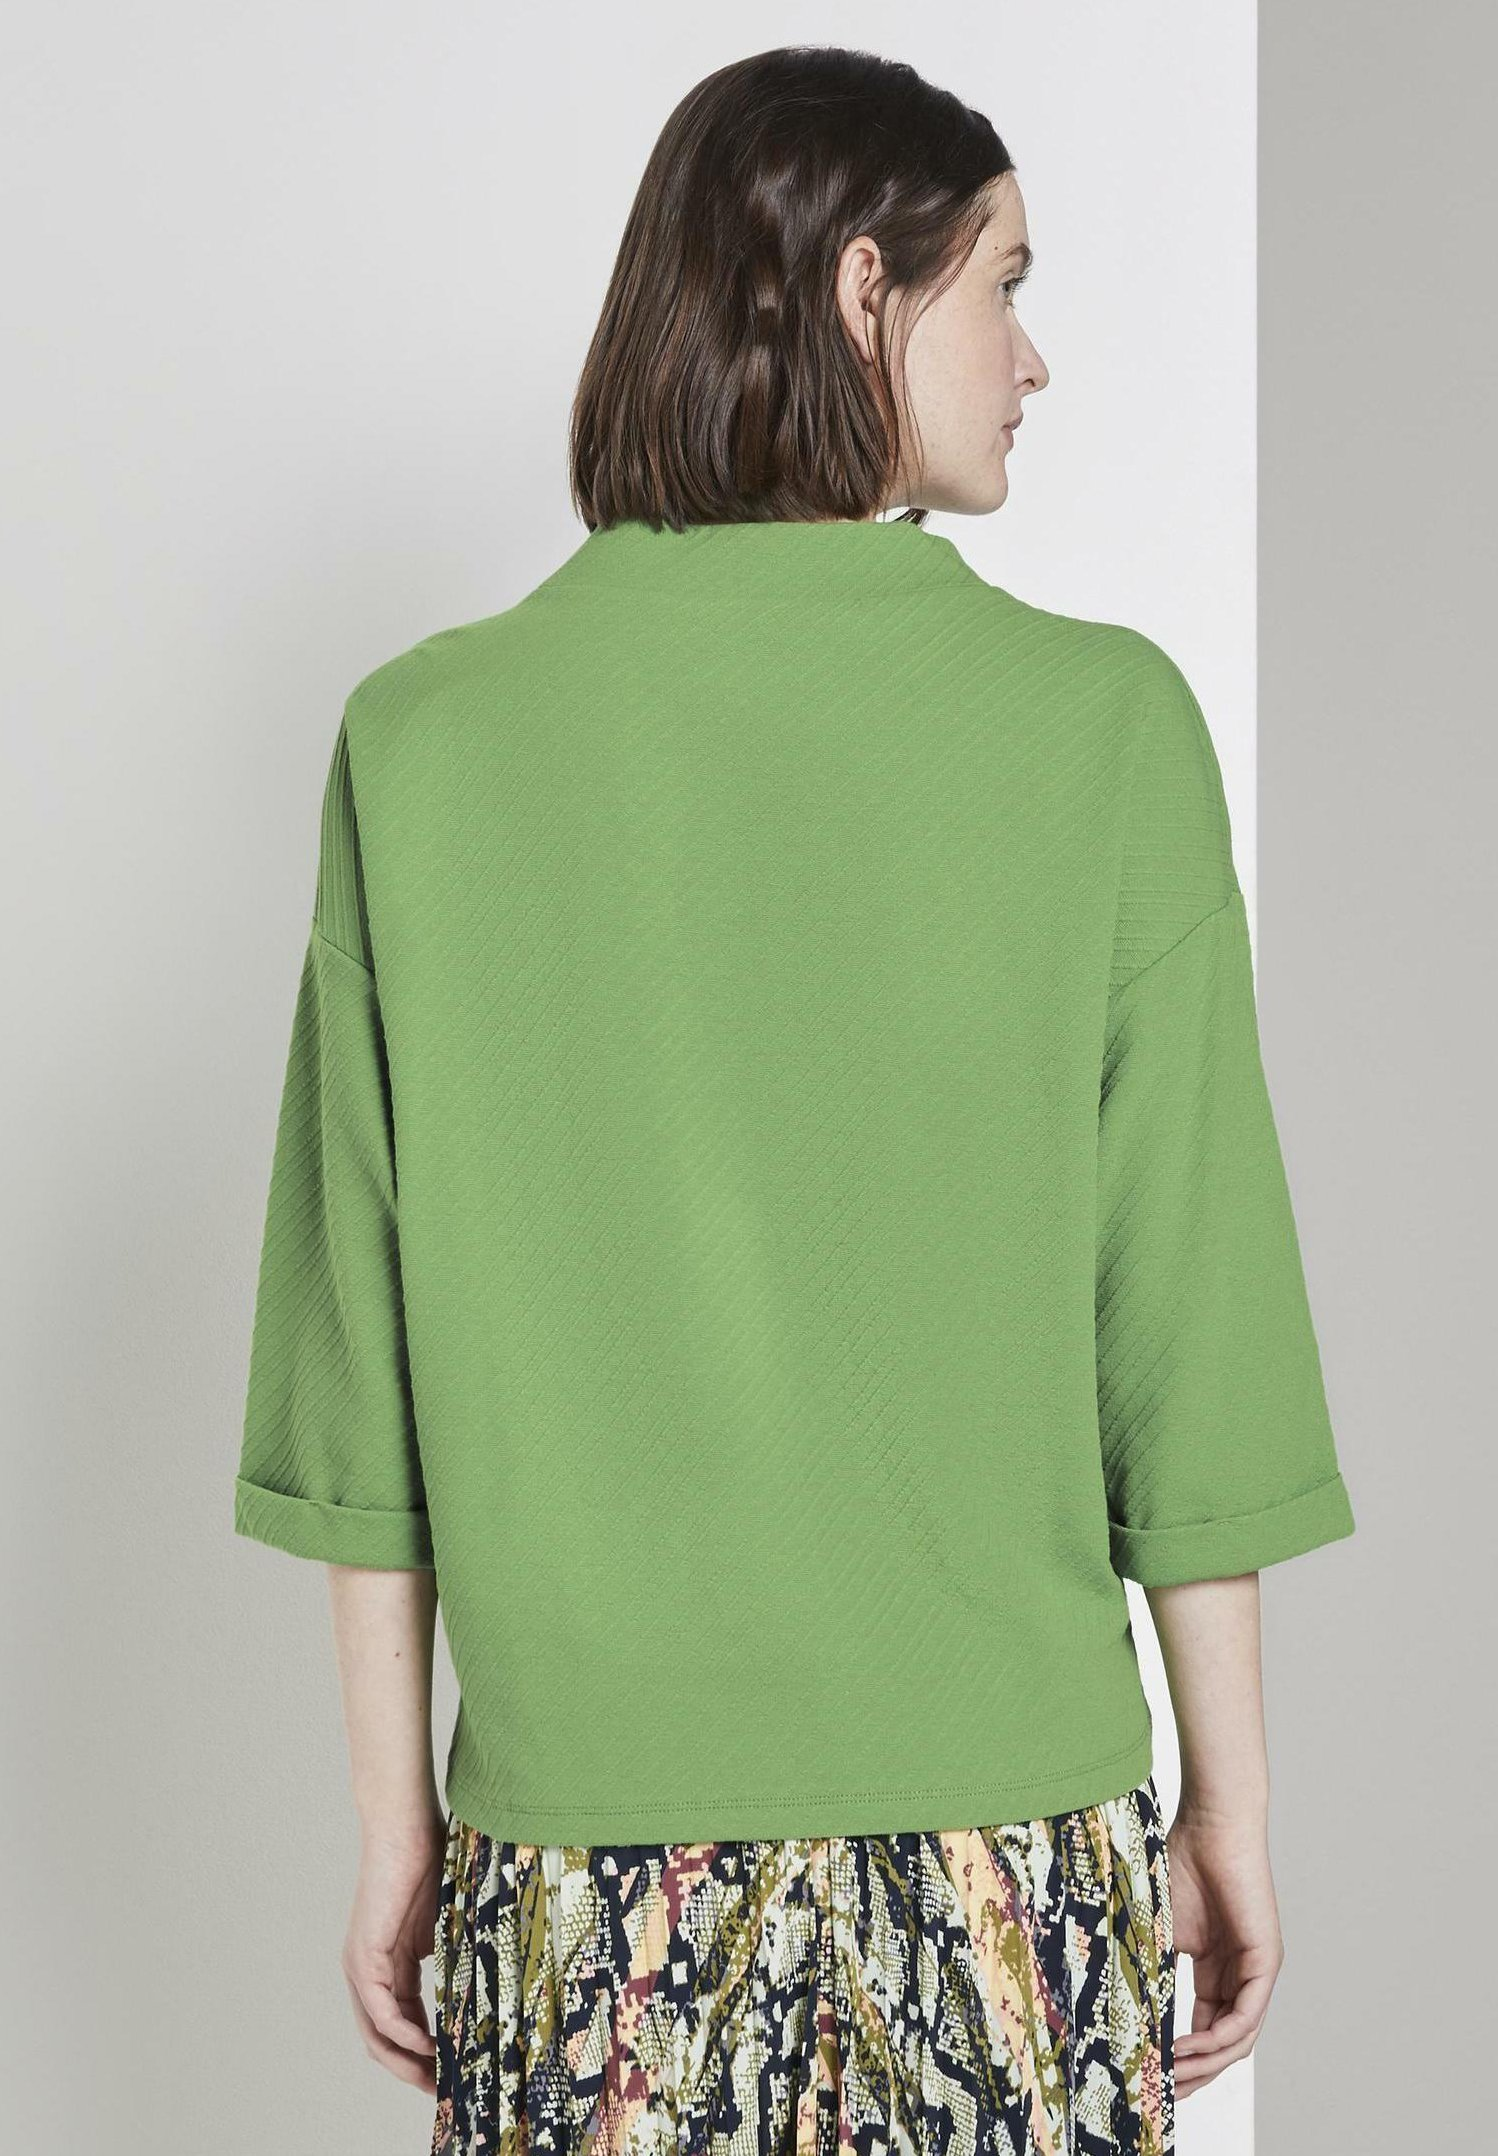 Tom Tailor Boxy Stand Up Collar - T-shirt À Manches Longues Sundried Turf Green